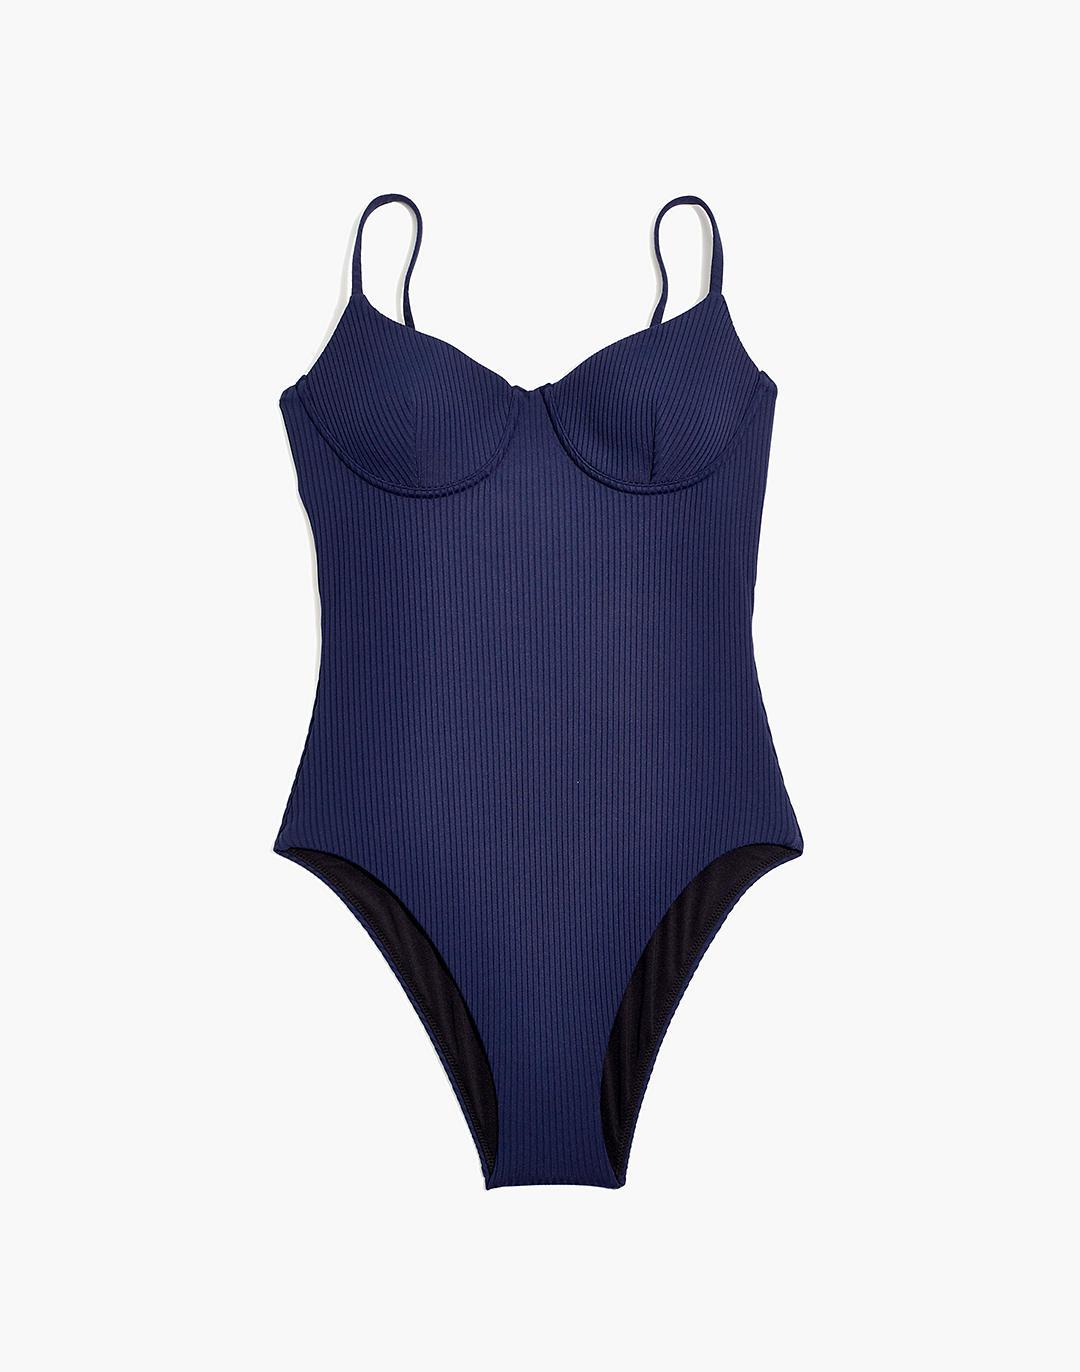 Madewell Second Wave Ribbed Structured One-Piece Swimsuit 3